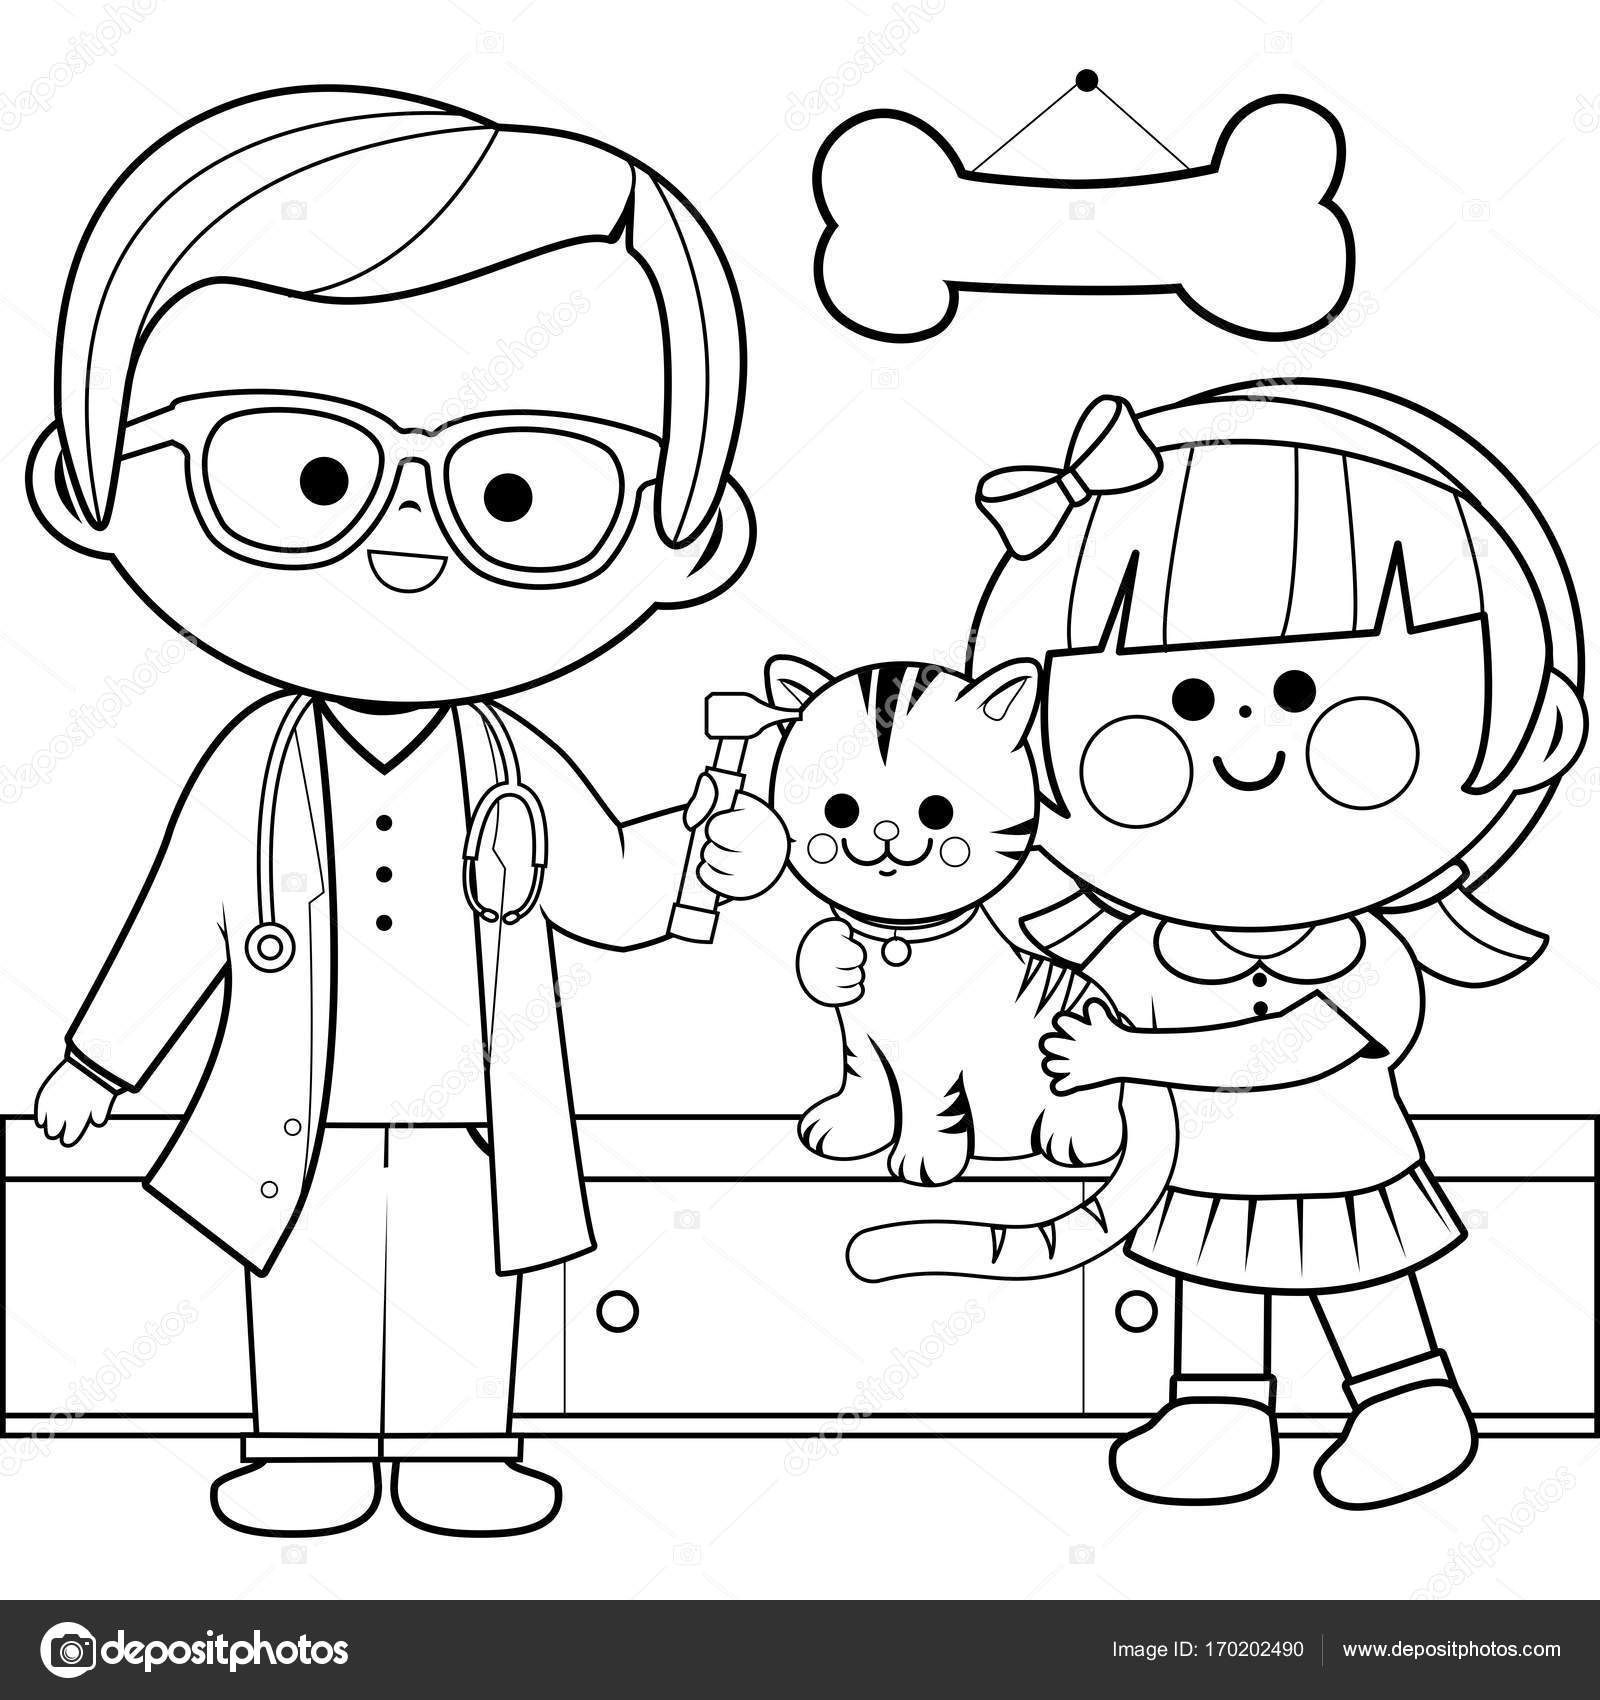 Uncategorized Veterinarian Coloring Pages veterinarian examining a cat coloring book page stock vector 170202490